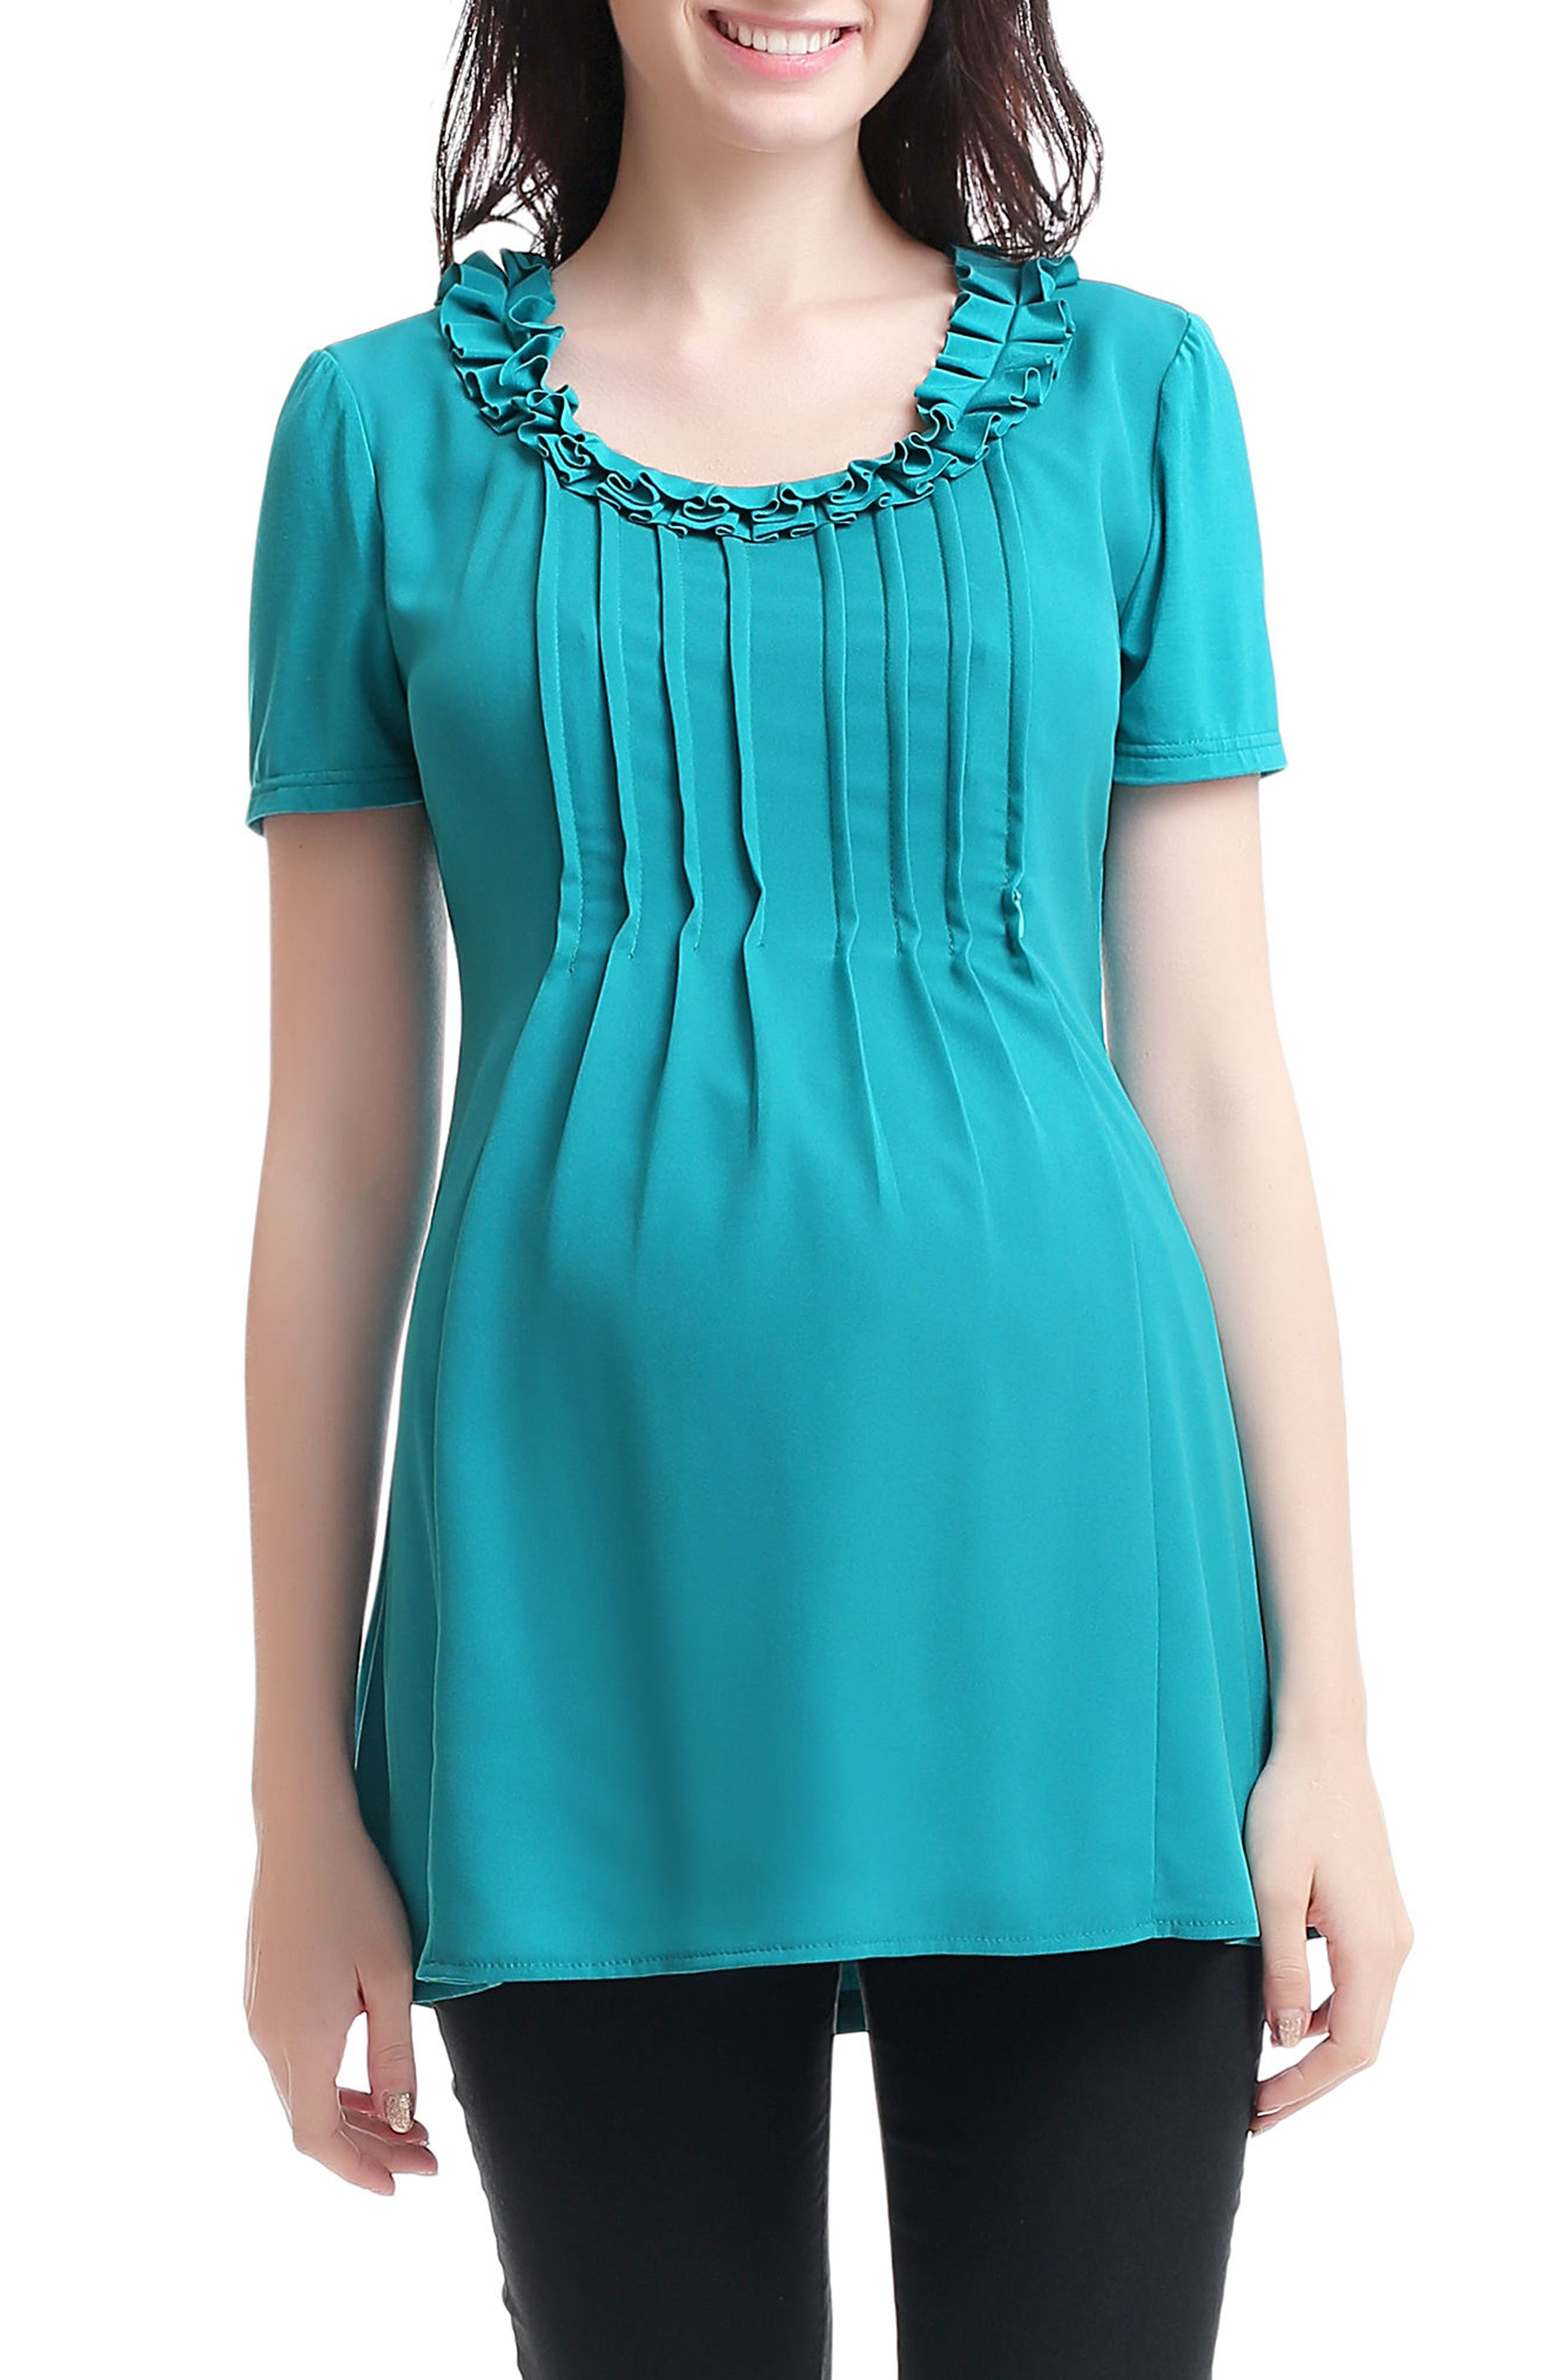 Chiana Maternity/Nursing Top,                             Main thumbnail 1, color,                             Teal